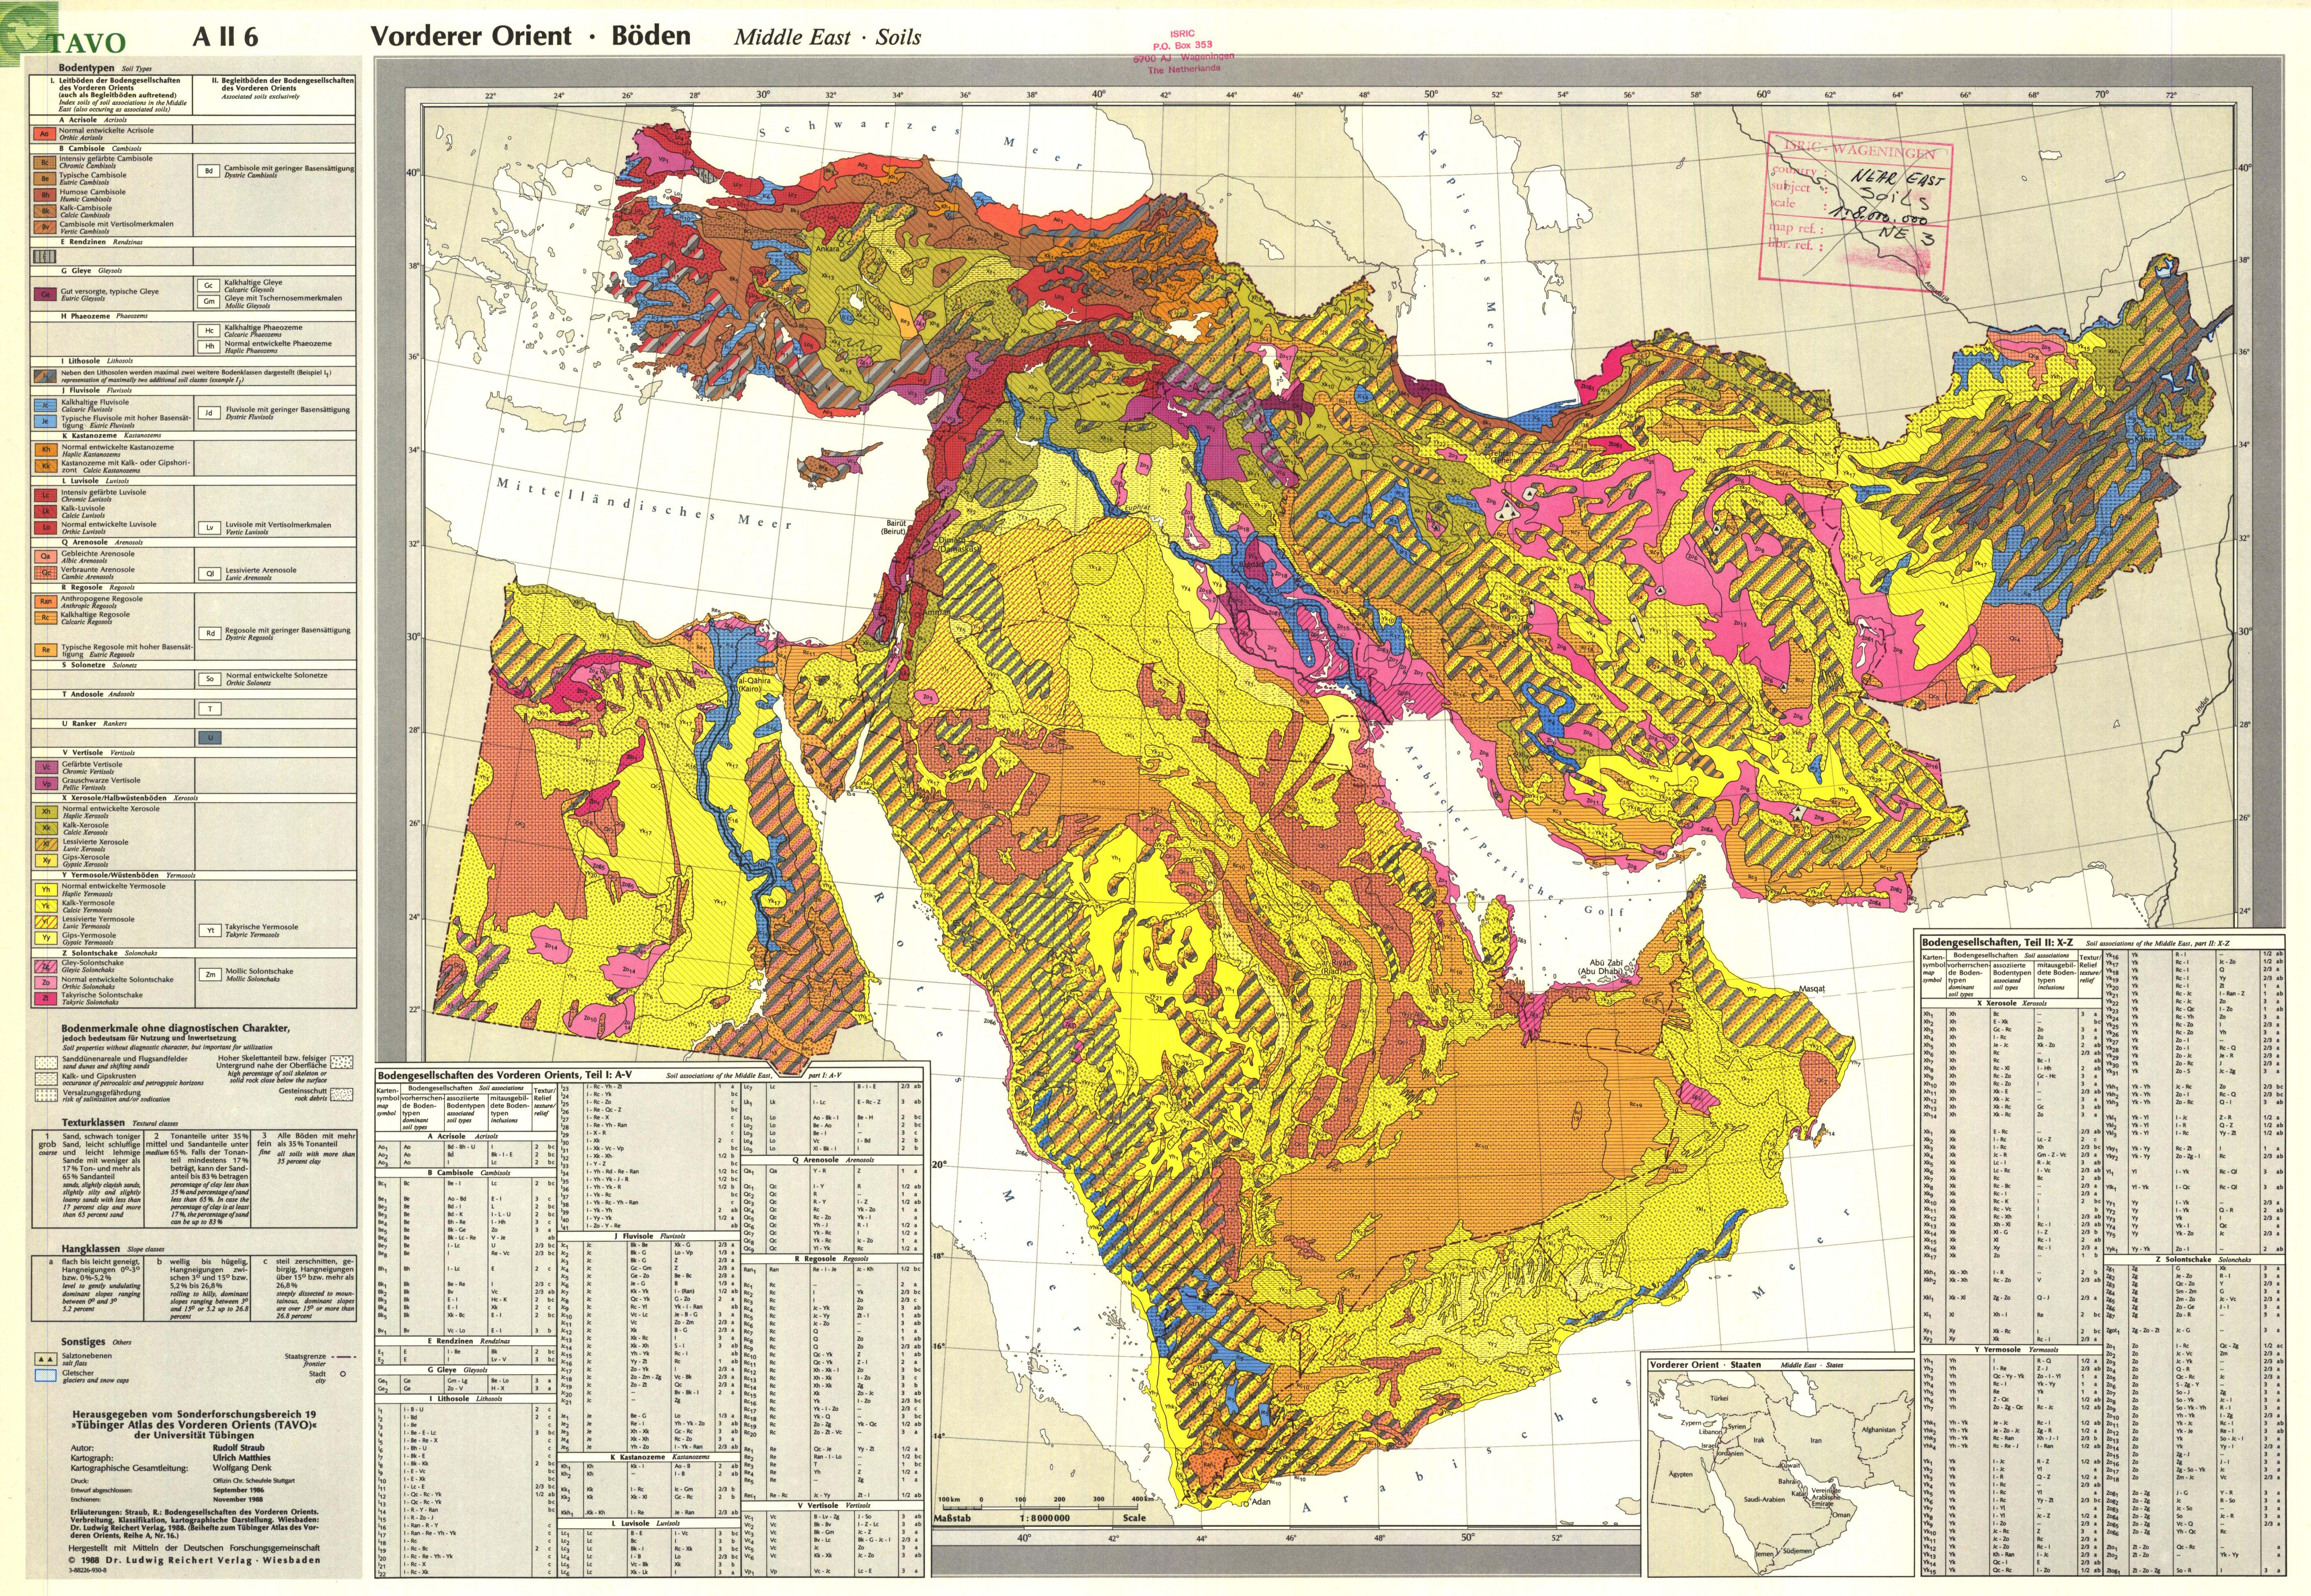 Vorderer Orient Bden AII6 Middle East Soils  ESDAC